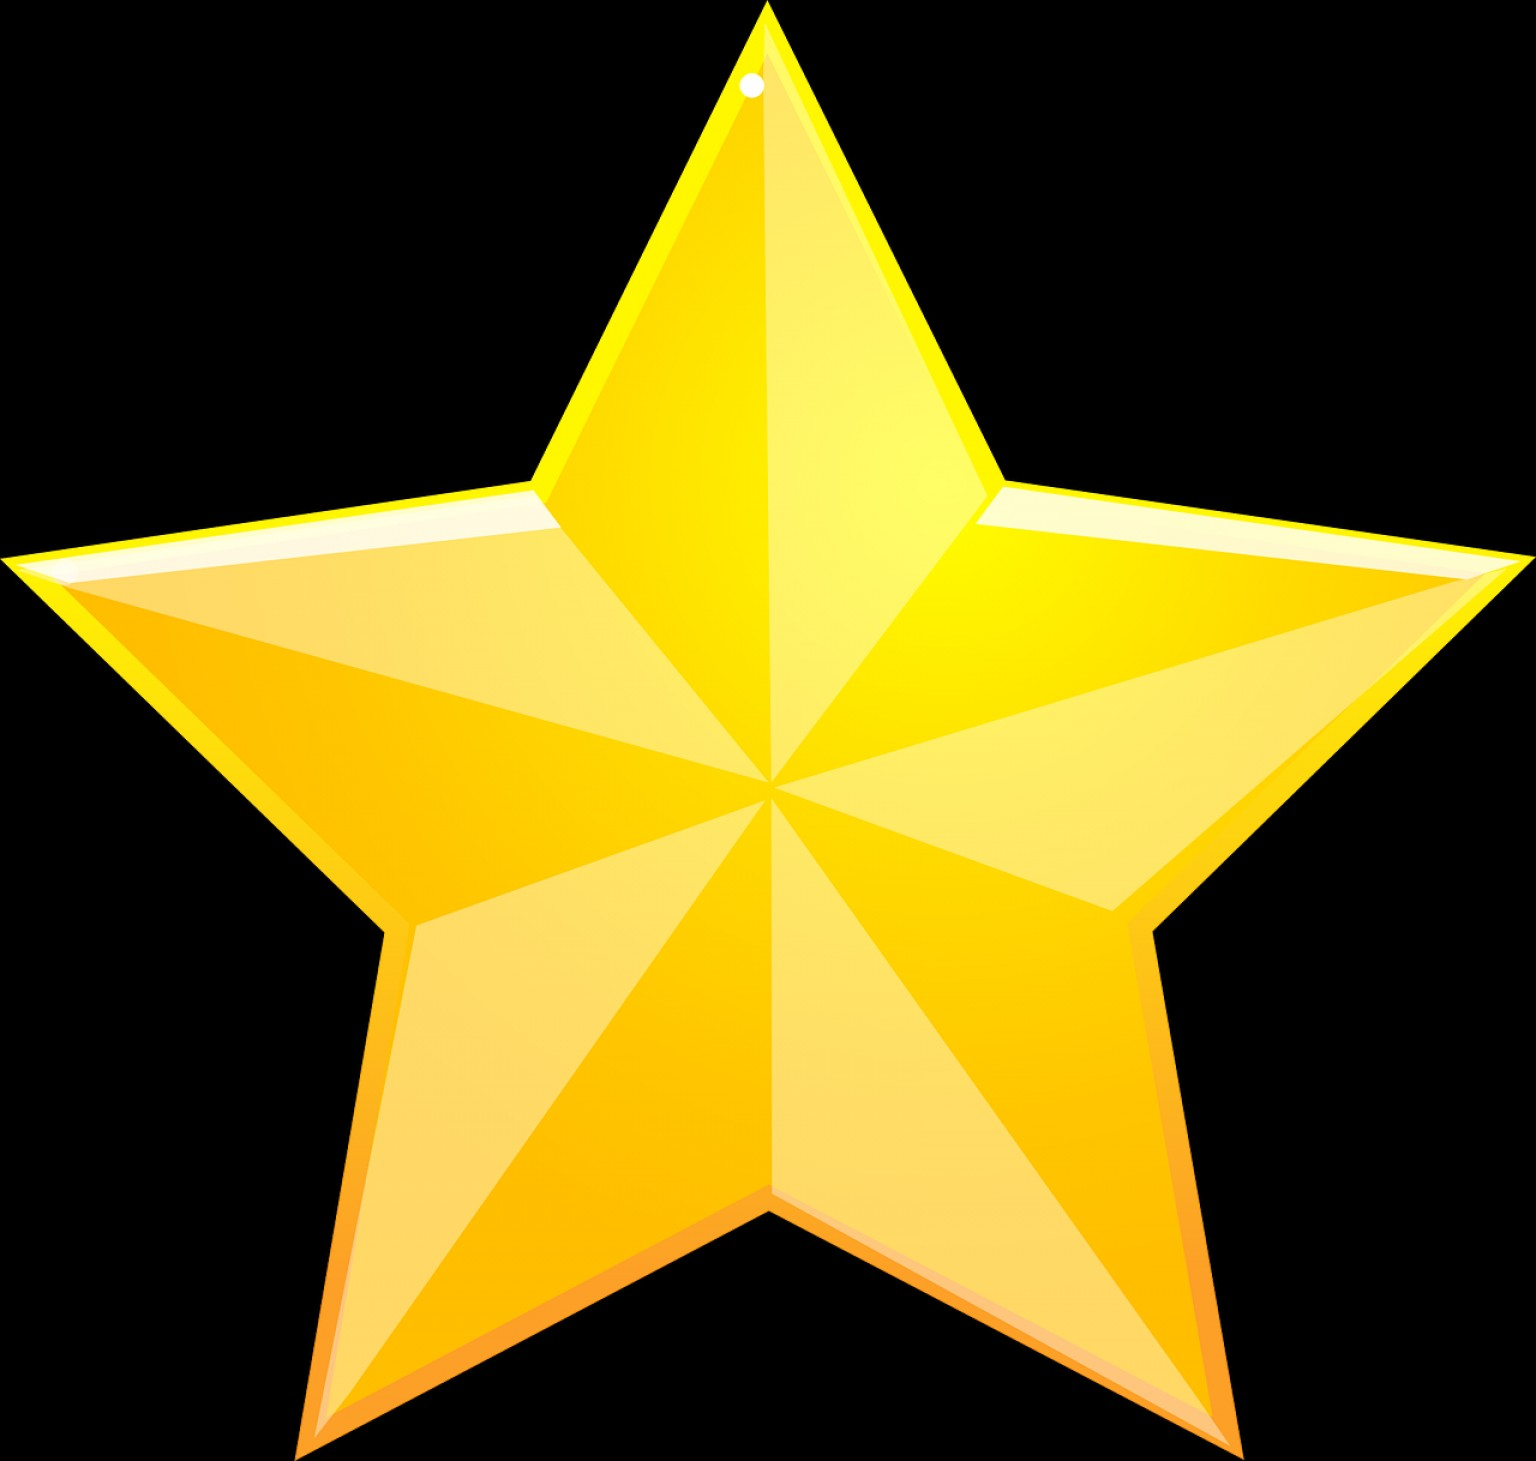 Stars Yellow Christmas Vector: Star Yellow Christmas Star Christmas X Mas Xmas Golden Shining